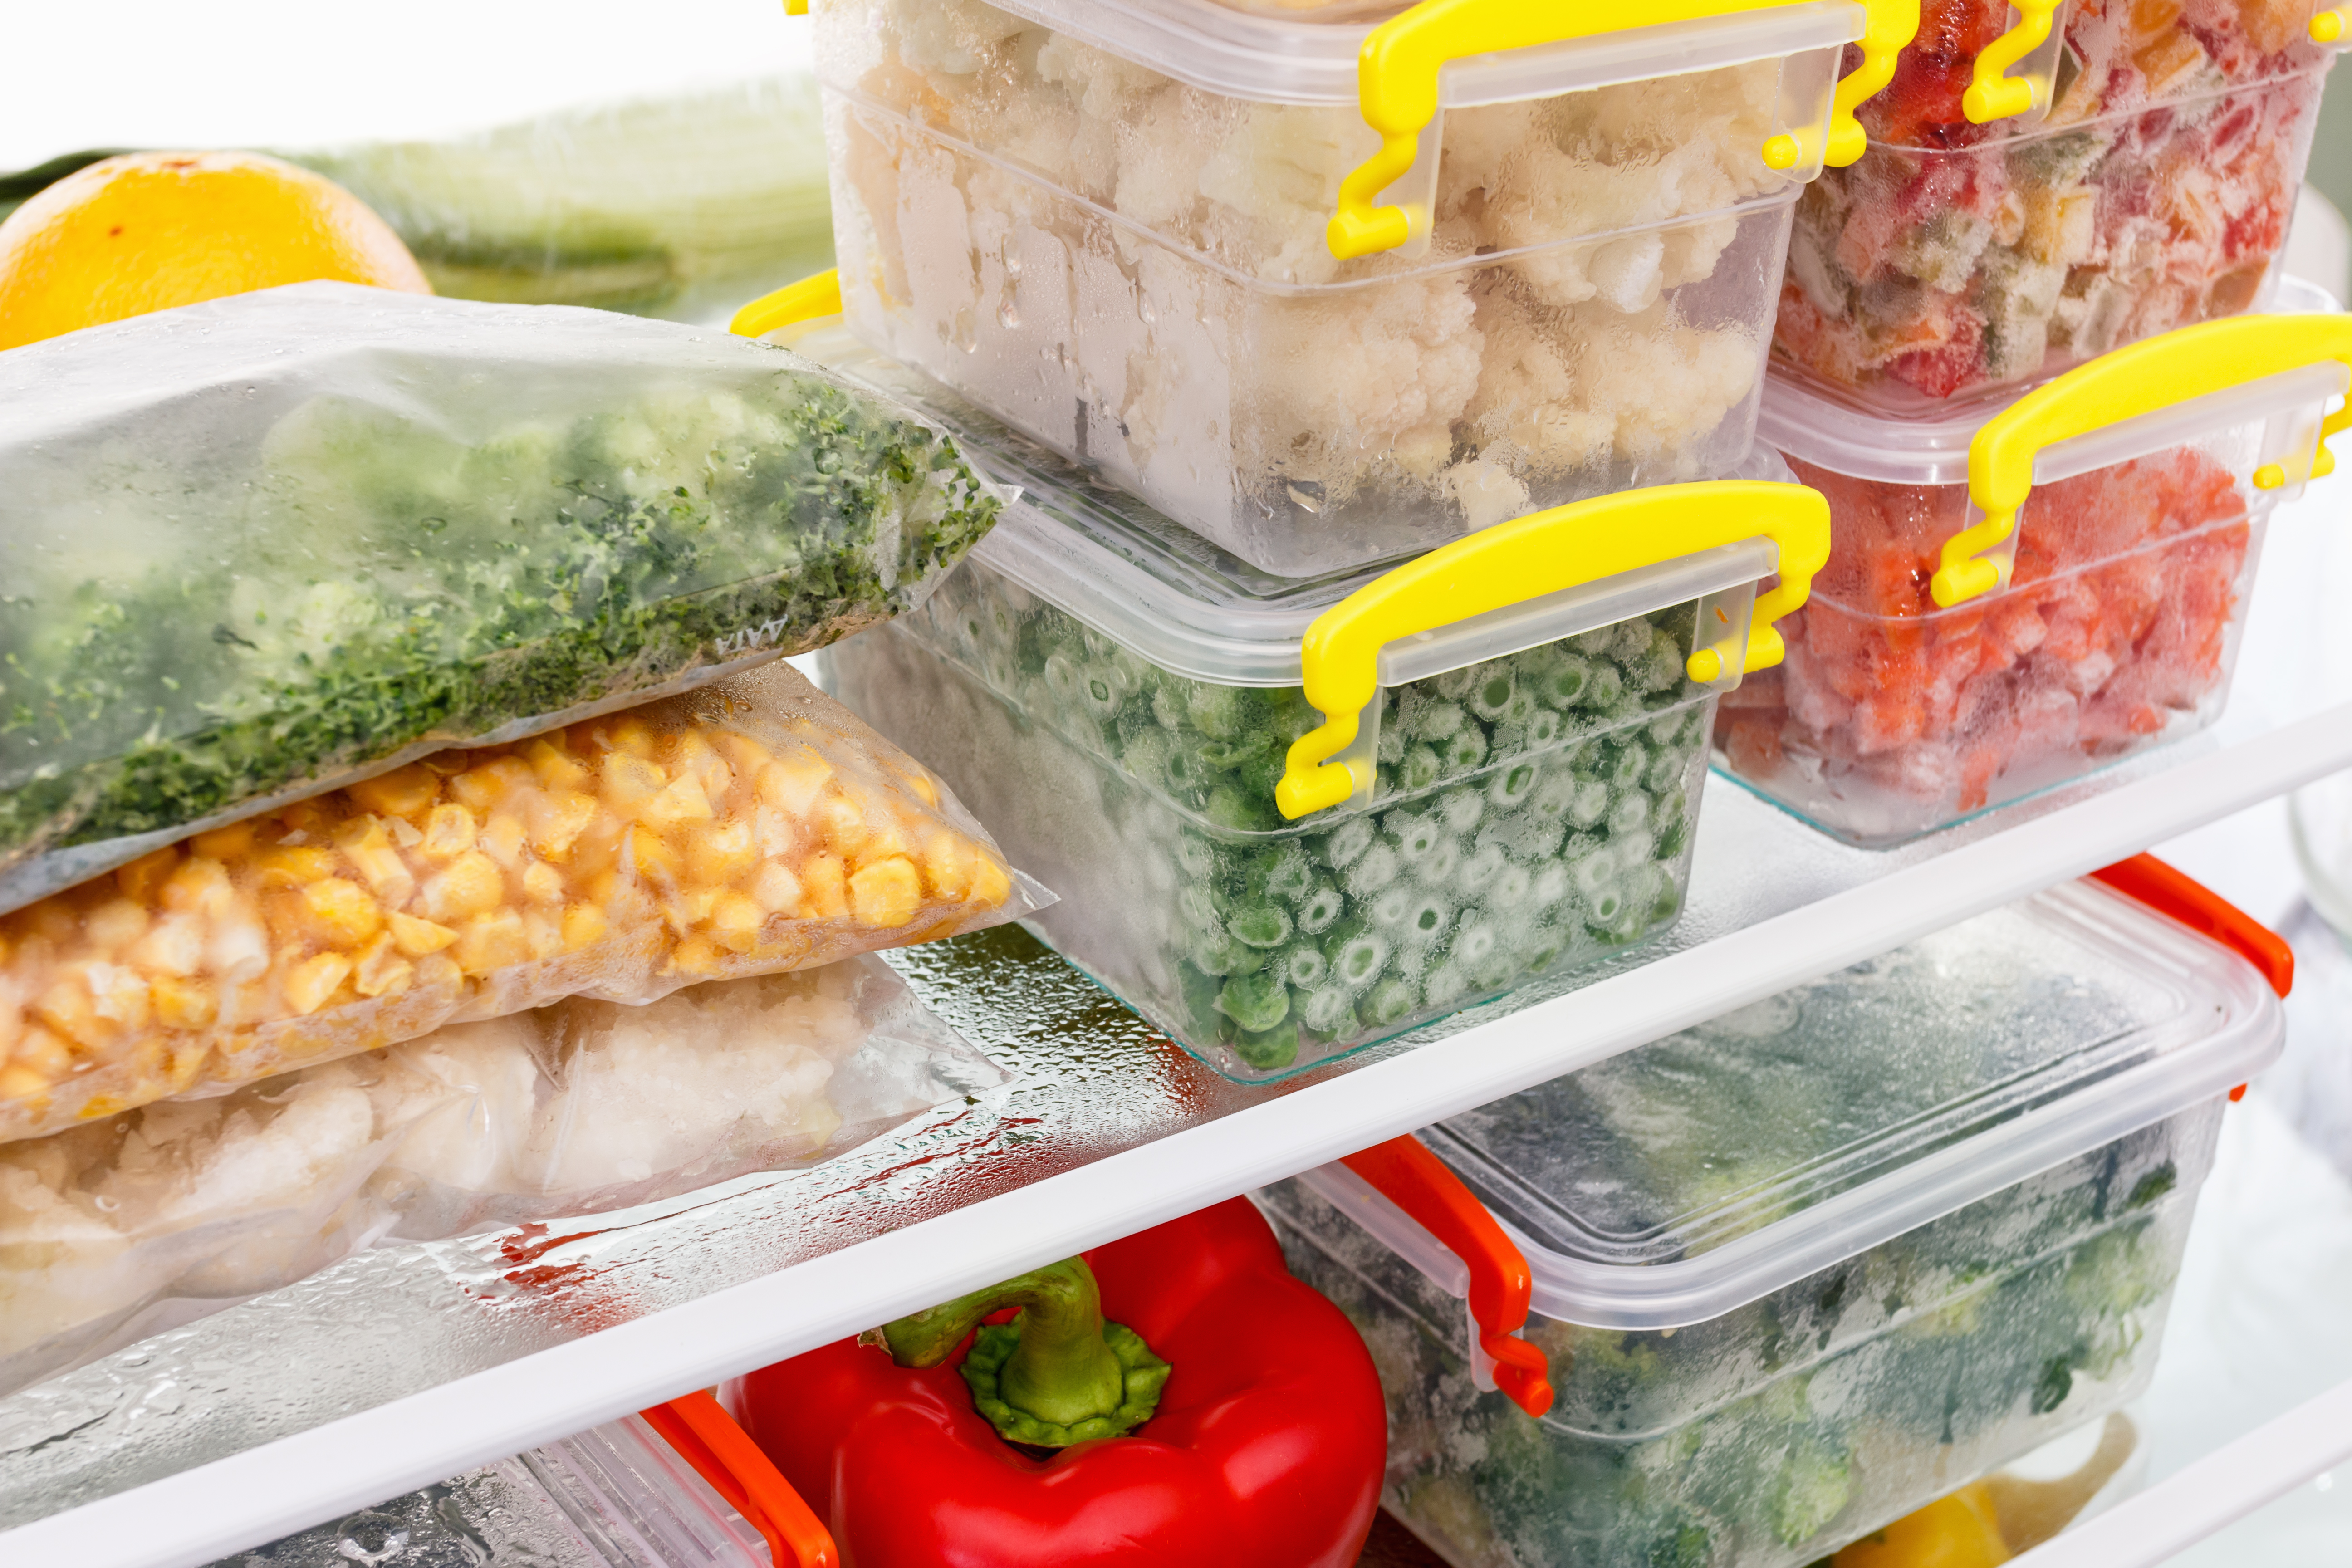 How to Pack Frozen Food for a Car Ride | LEAFtv